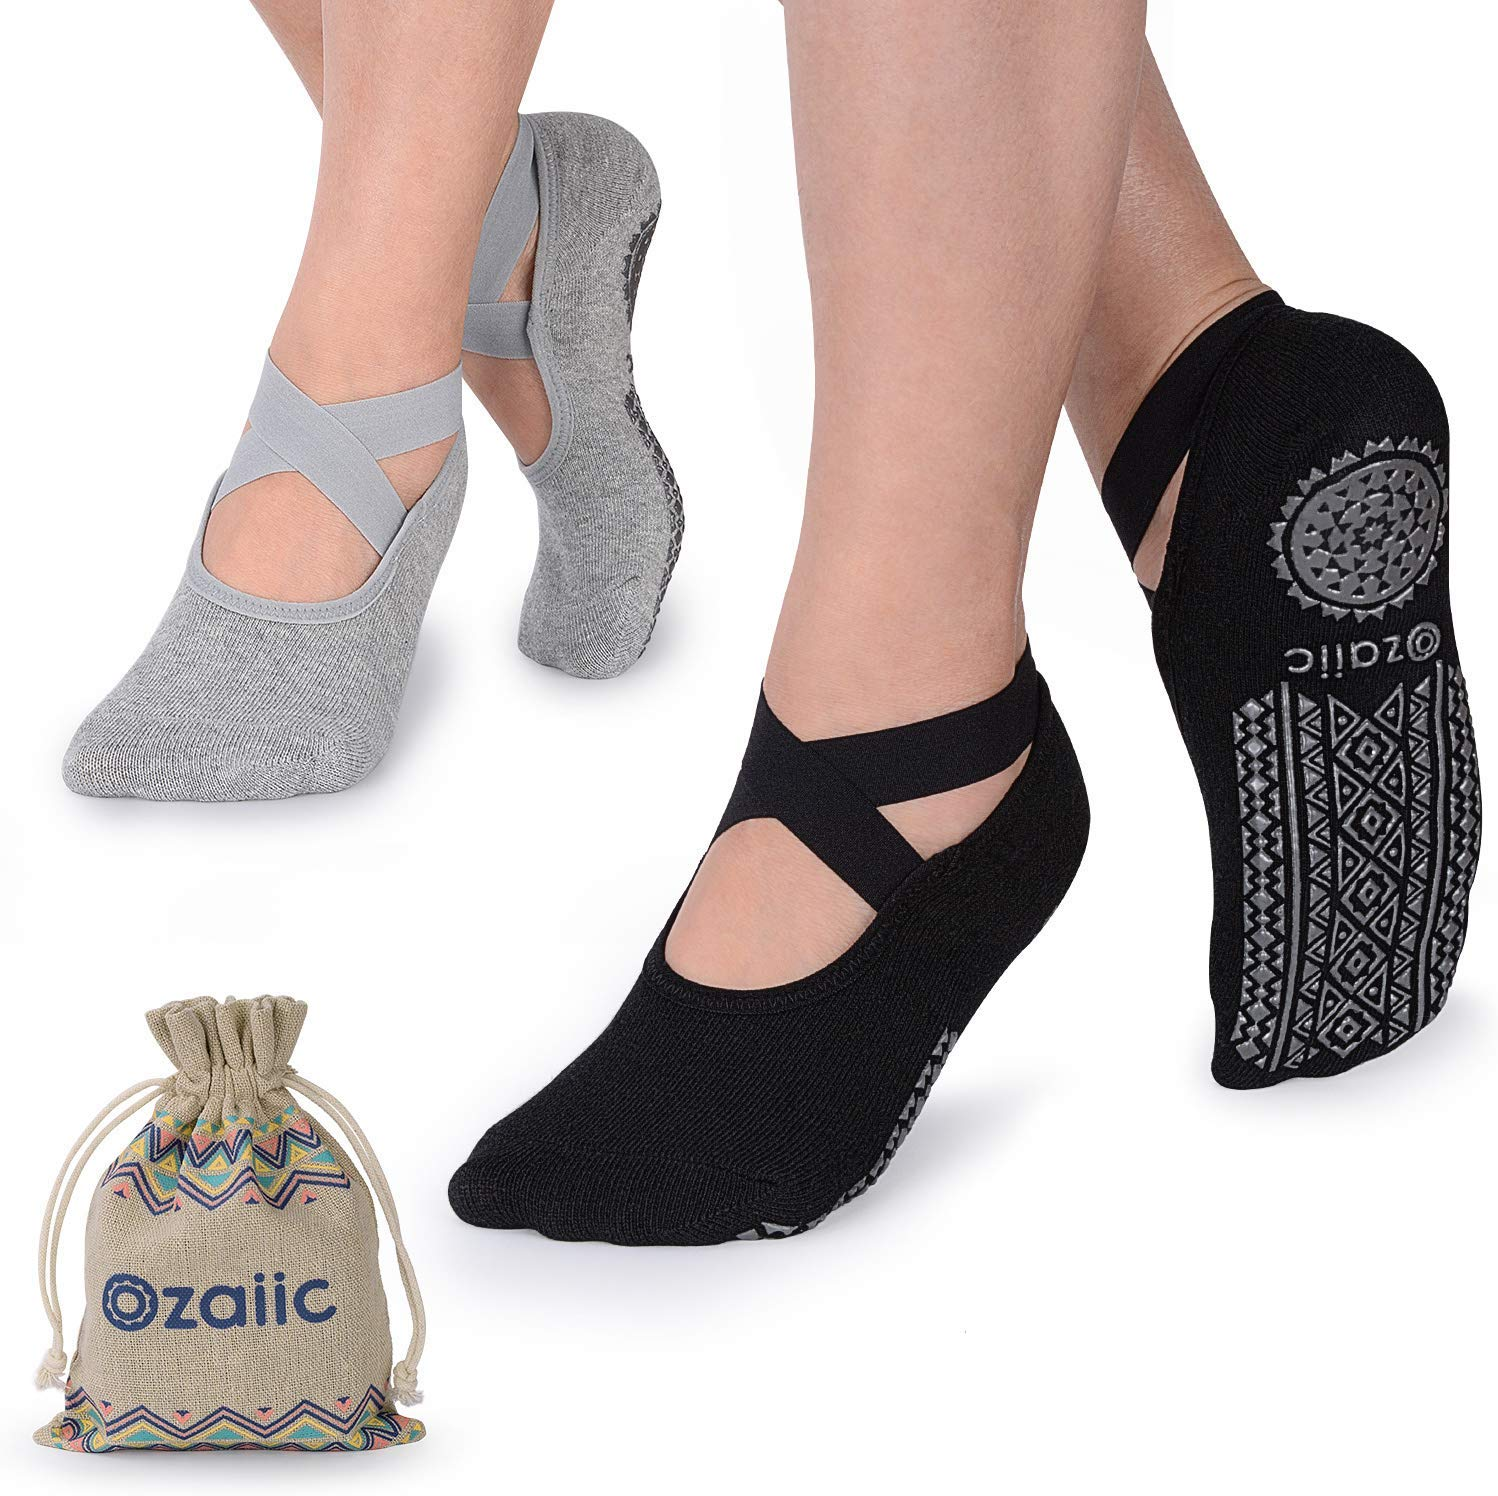 non slip yoga socks in black and grey